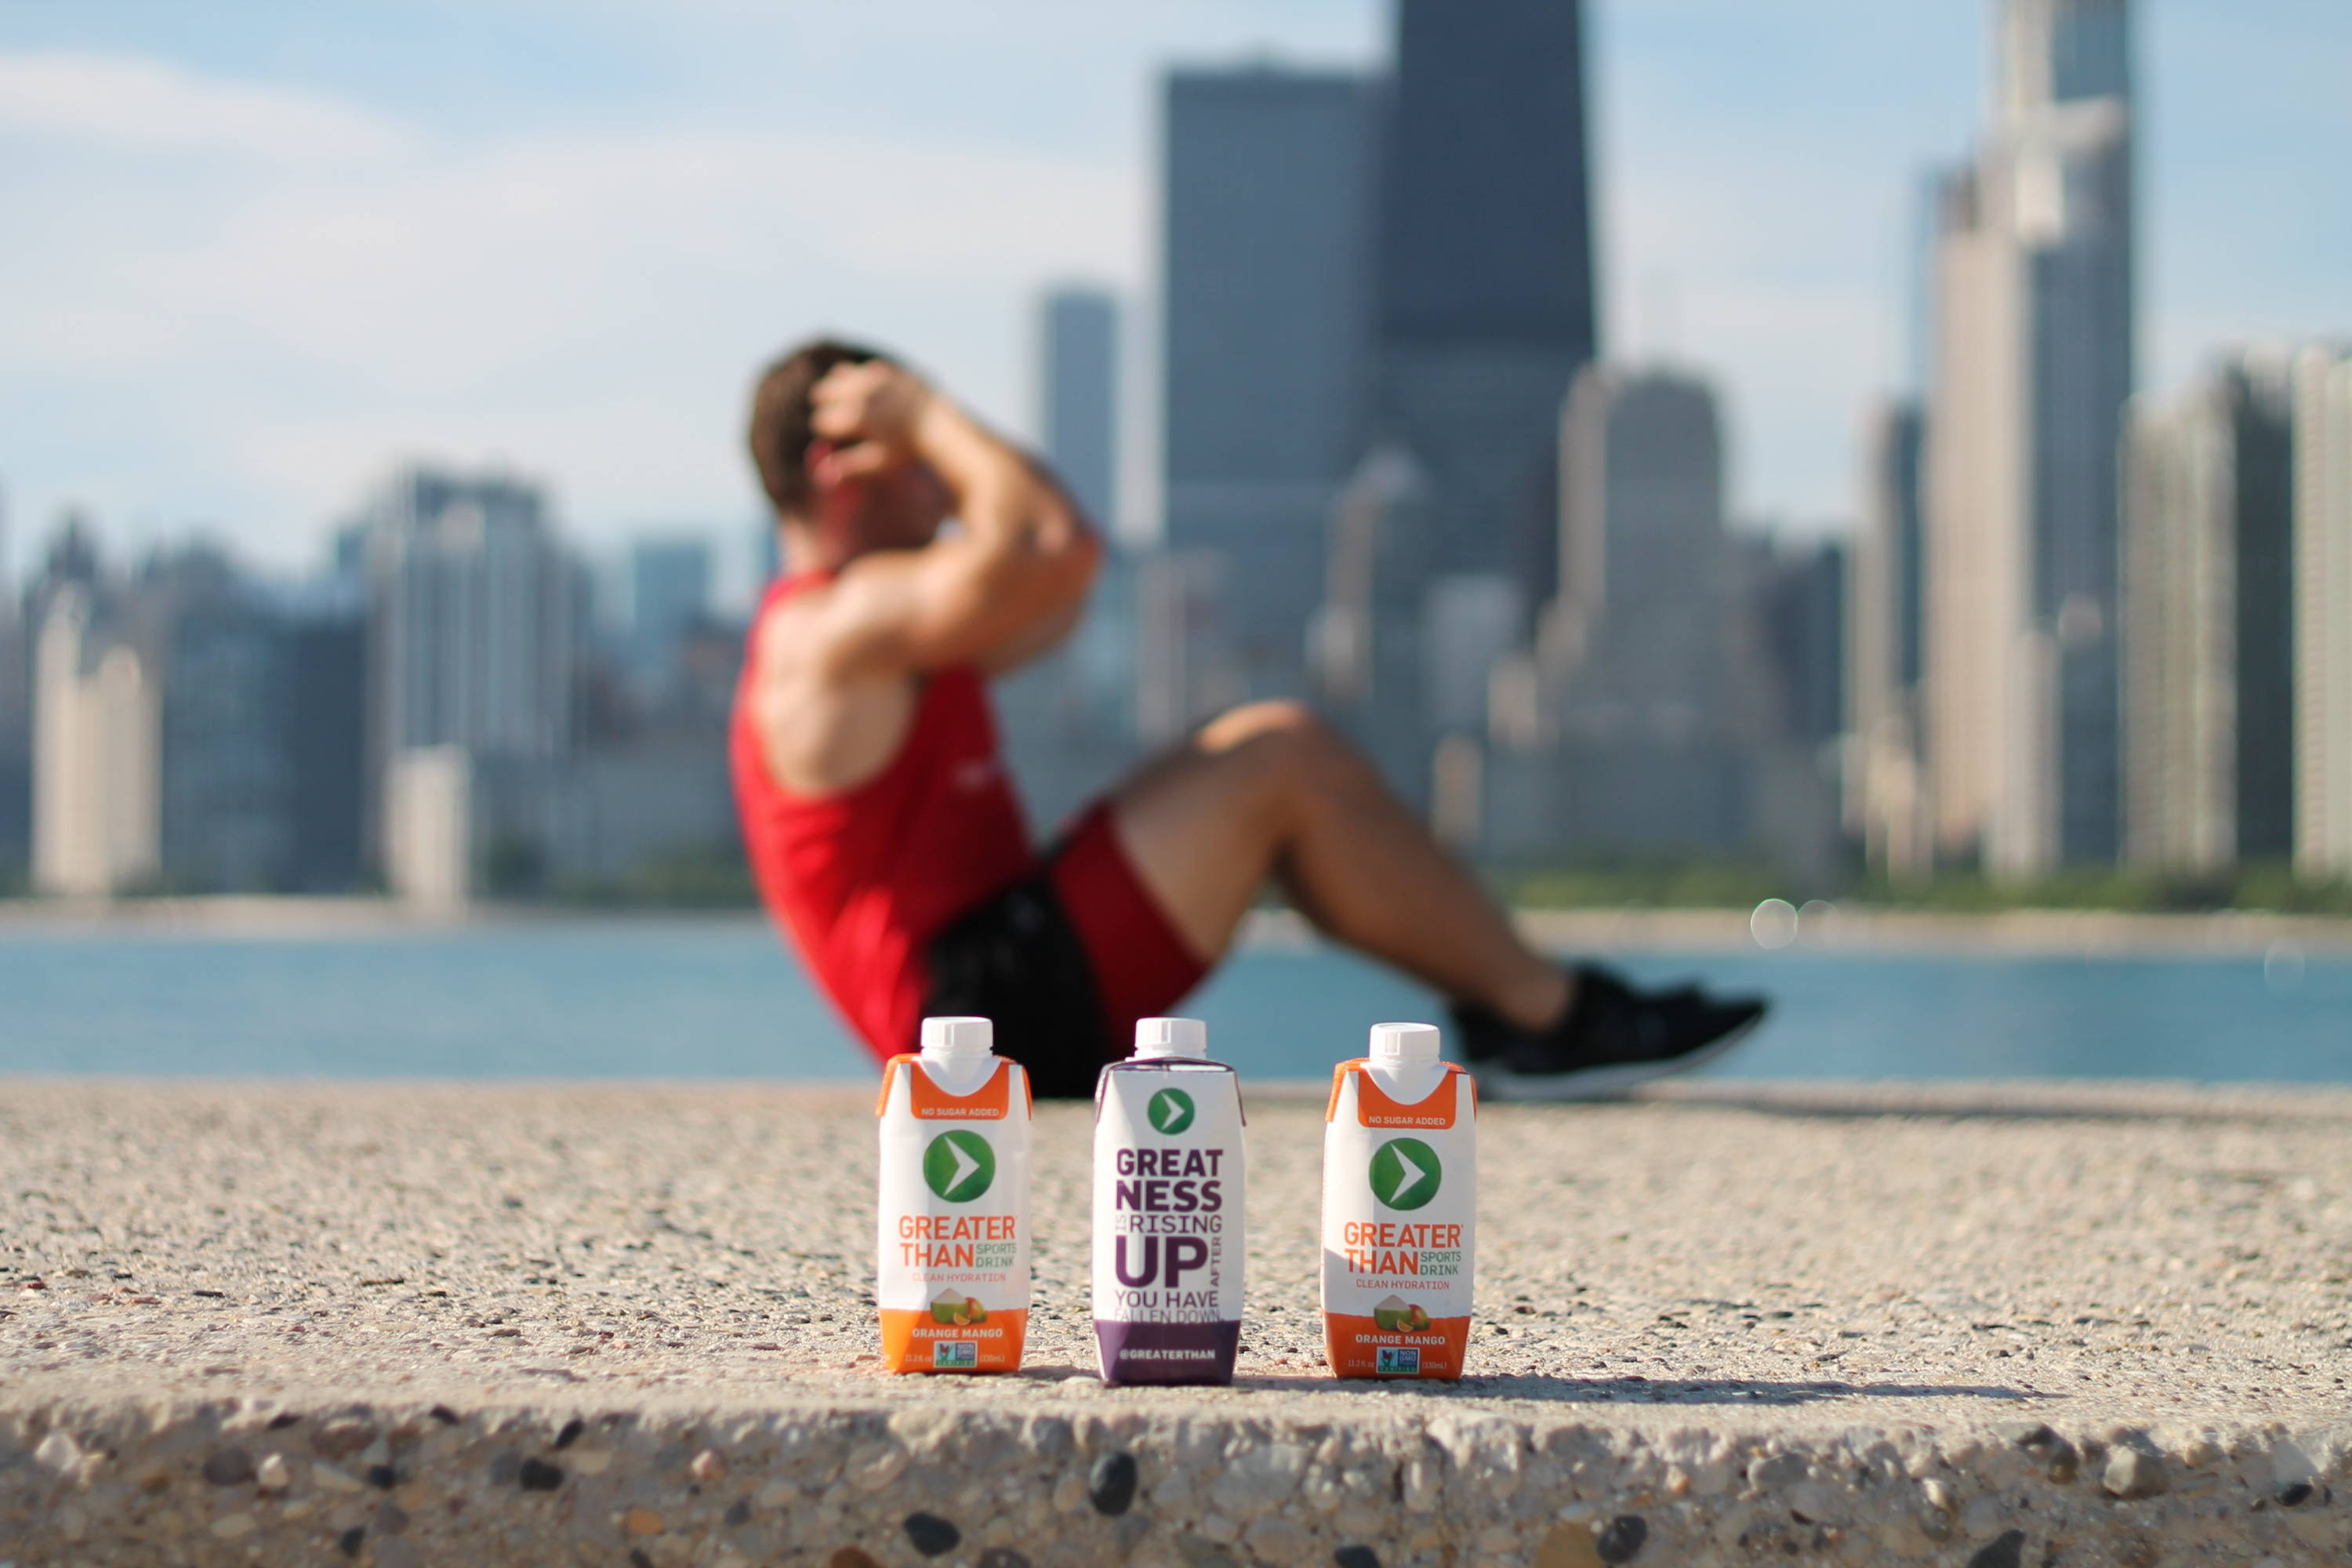 the valiant athlete battling extreme heat & exhaustion, reaching for the sports drink